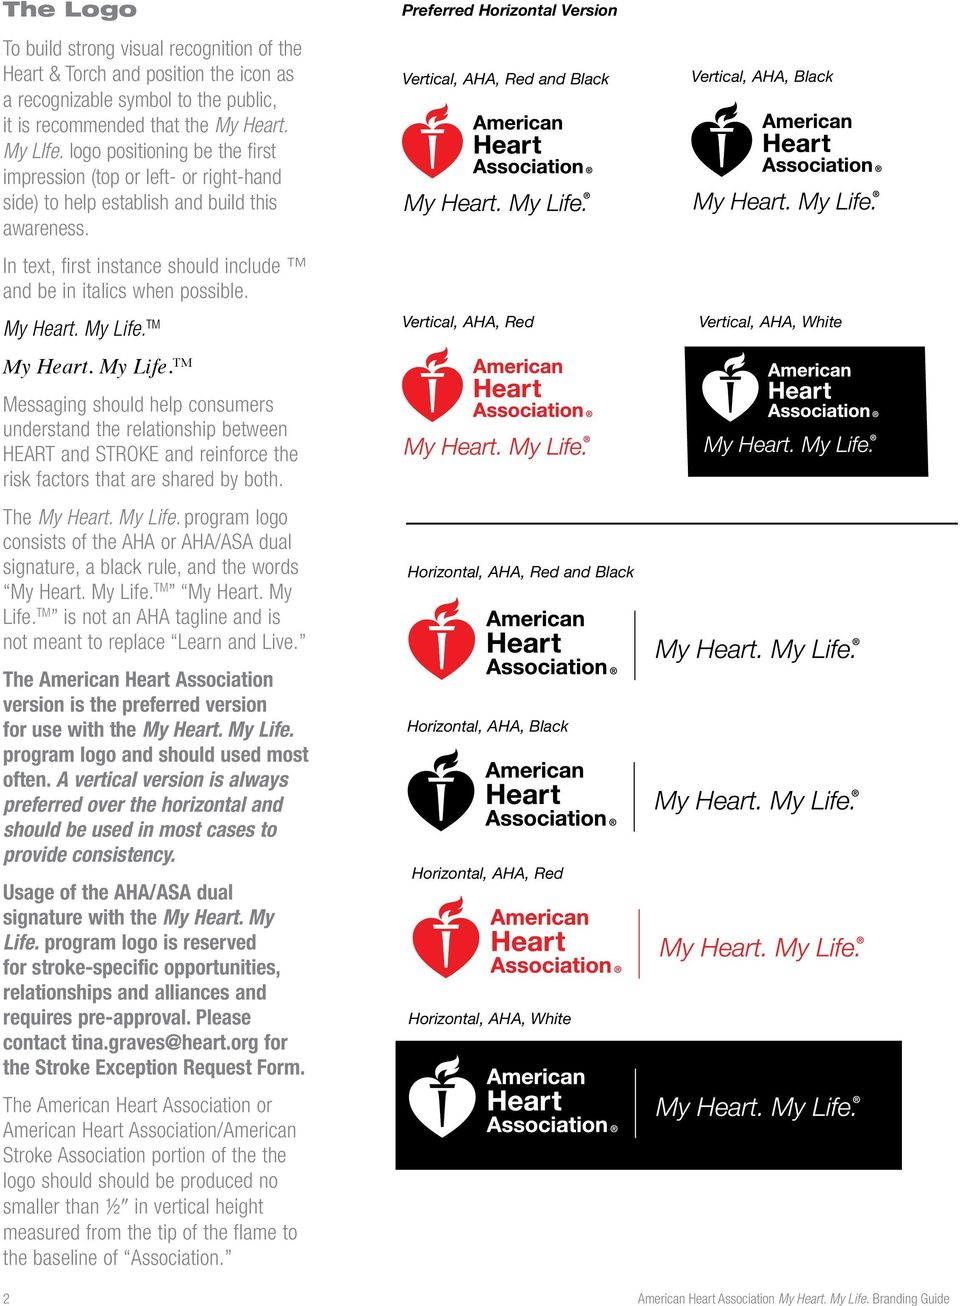 My Life. TM My Heart. My Life. TM Messaging should help consumers understand the relationship between HEART and STROKE and reinforce the risk factors that are shared by both. The My Heart. My Life. program logo consists of the AHA or AHA/ASA dual signature, a black rule, and the words My Heart.